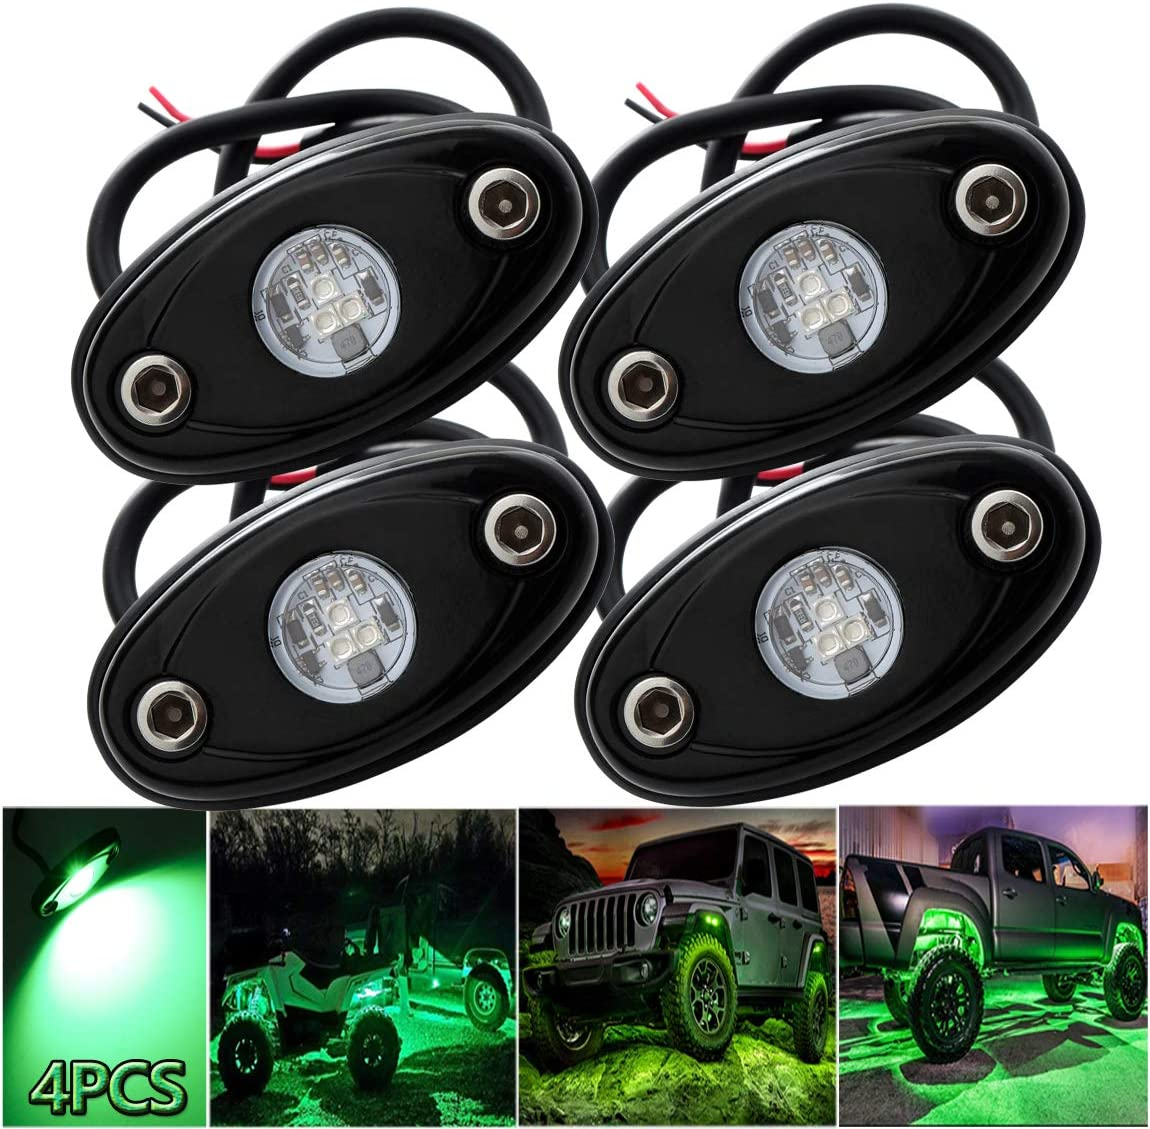 LEDMIRCY LED Rock Lights Green Kit 4PCS for JEEP Off Road Truck Auto Car Boat ATV SUV Waterproof High Power Neon Trail Lights Underglow Lights Interior Exterior Shockproof 4PCS Green